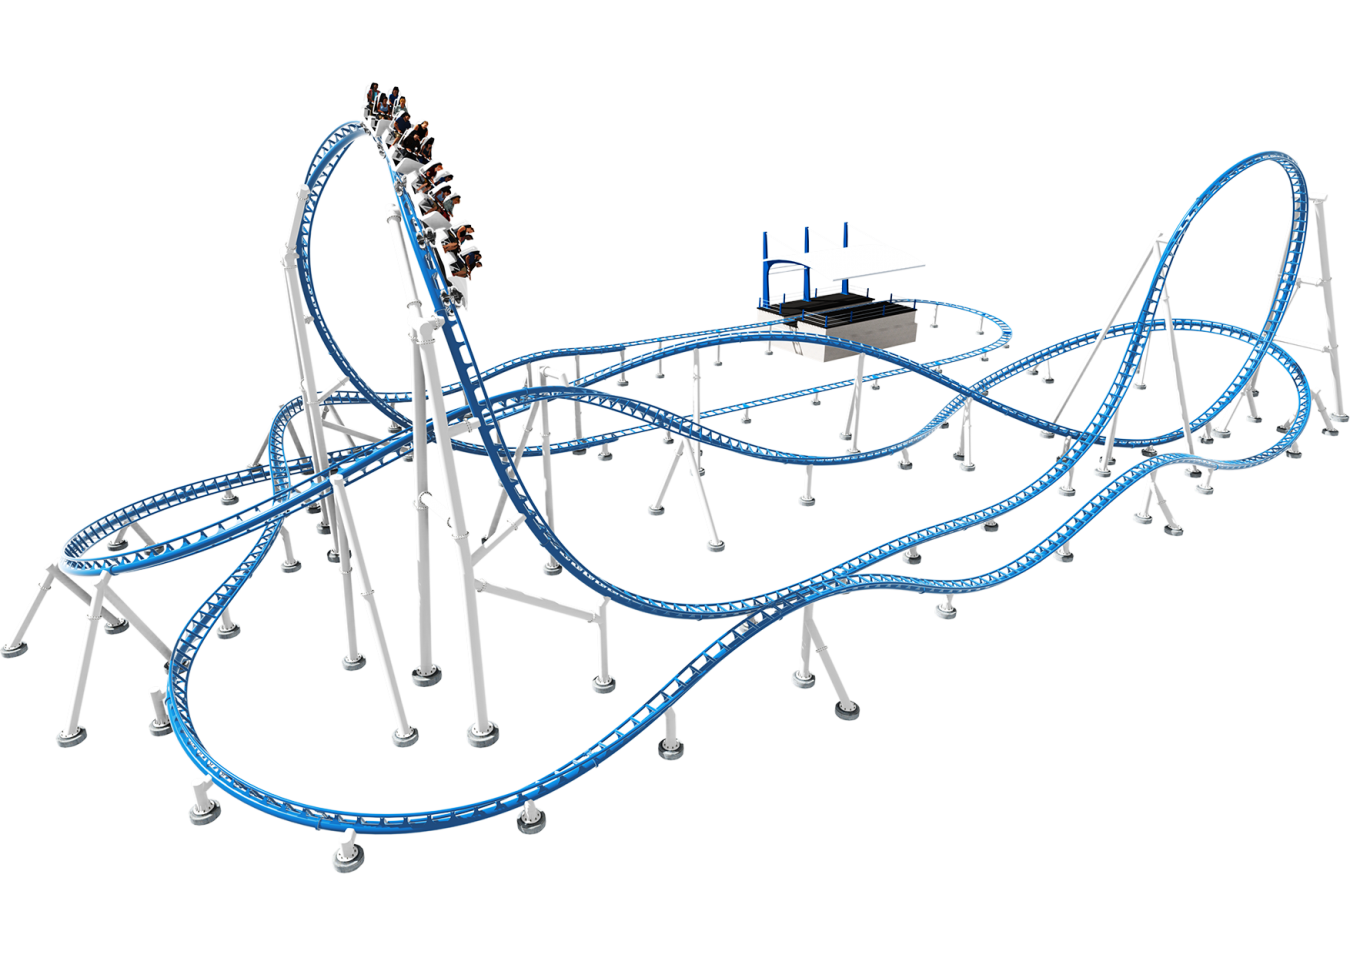 intamin-lsm-roller-coaster-layout-single-launch-2x12-1.png